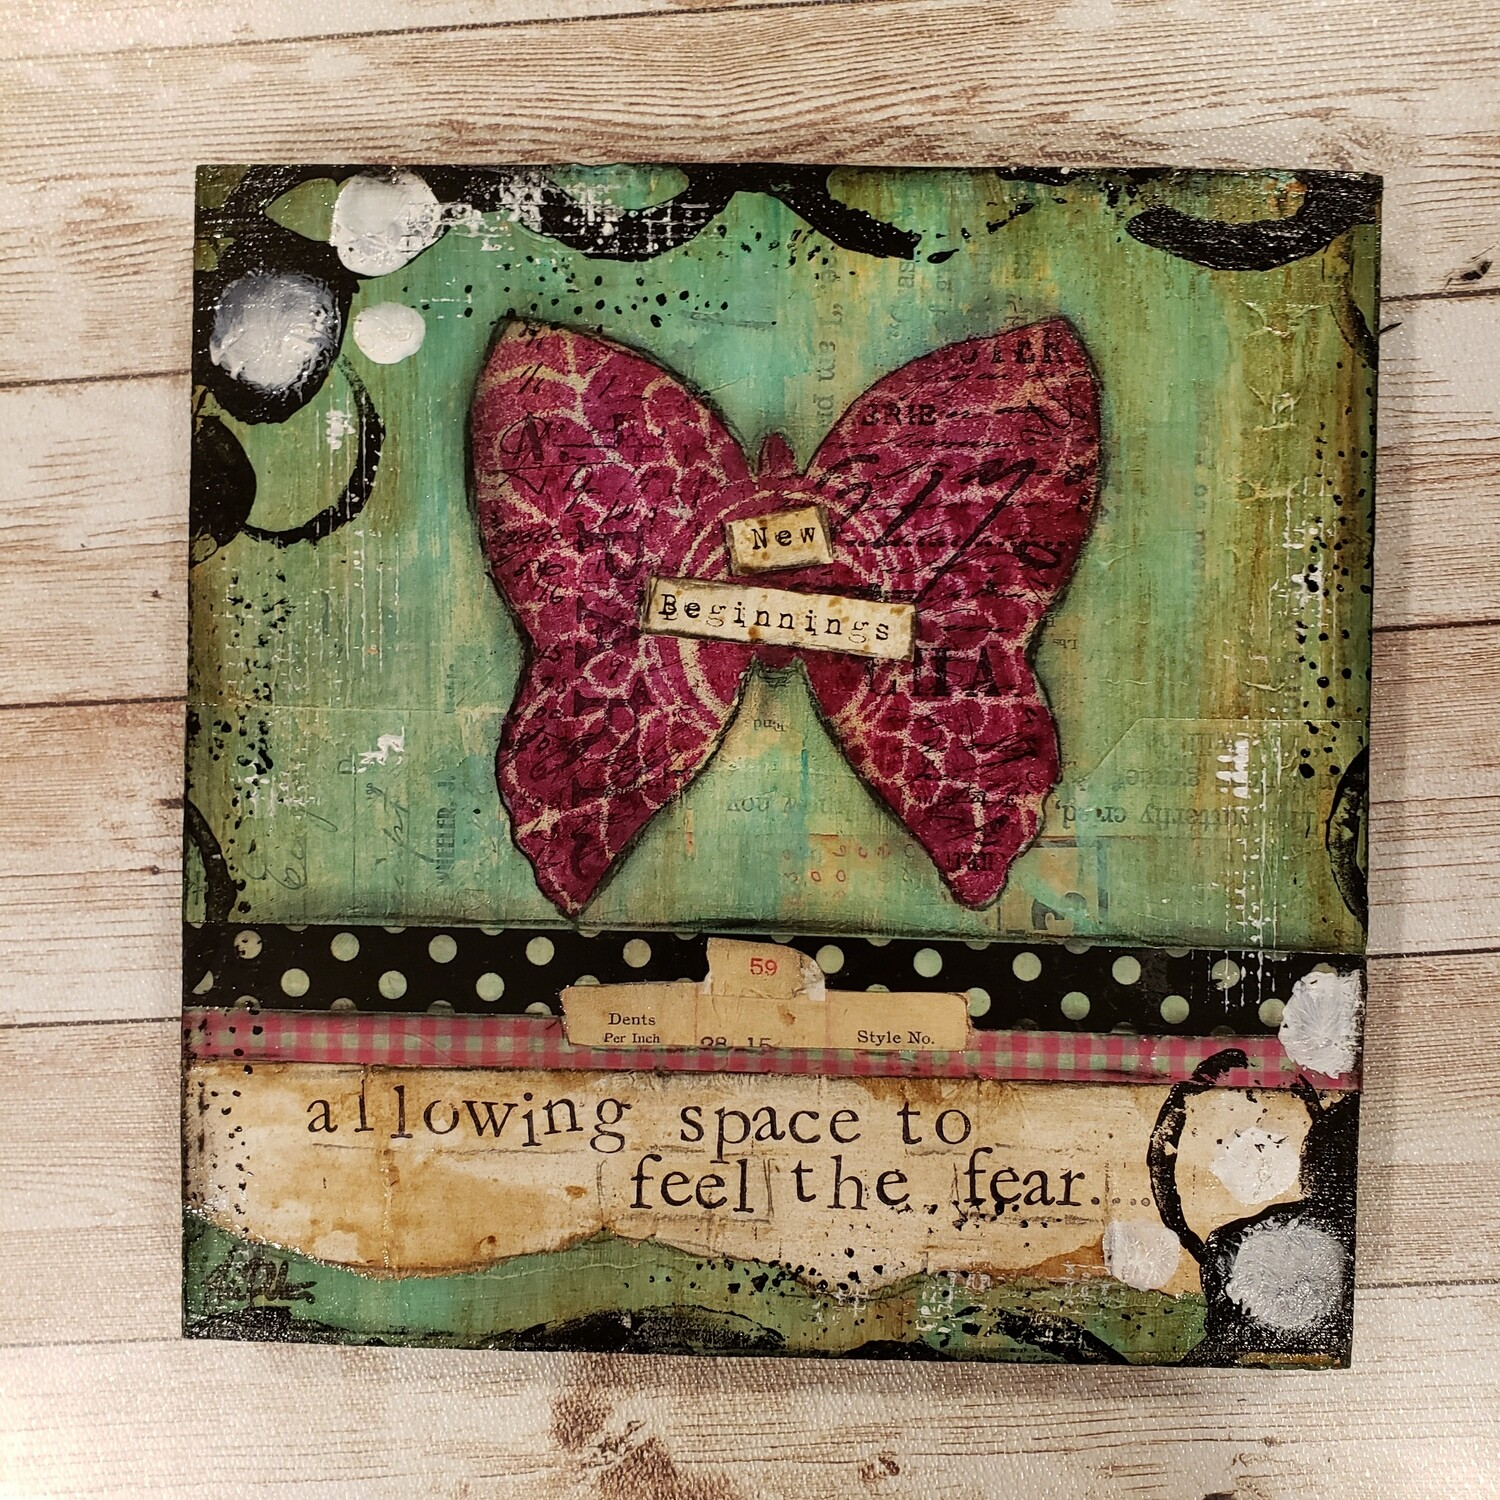 New beginnings allowing space 8x8 clearance mixed media original